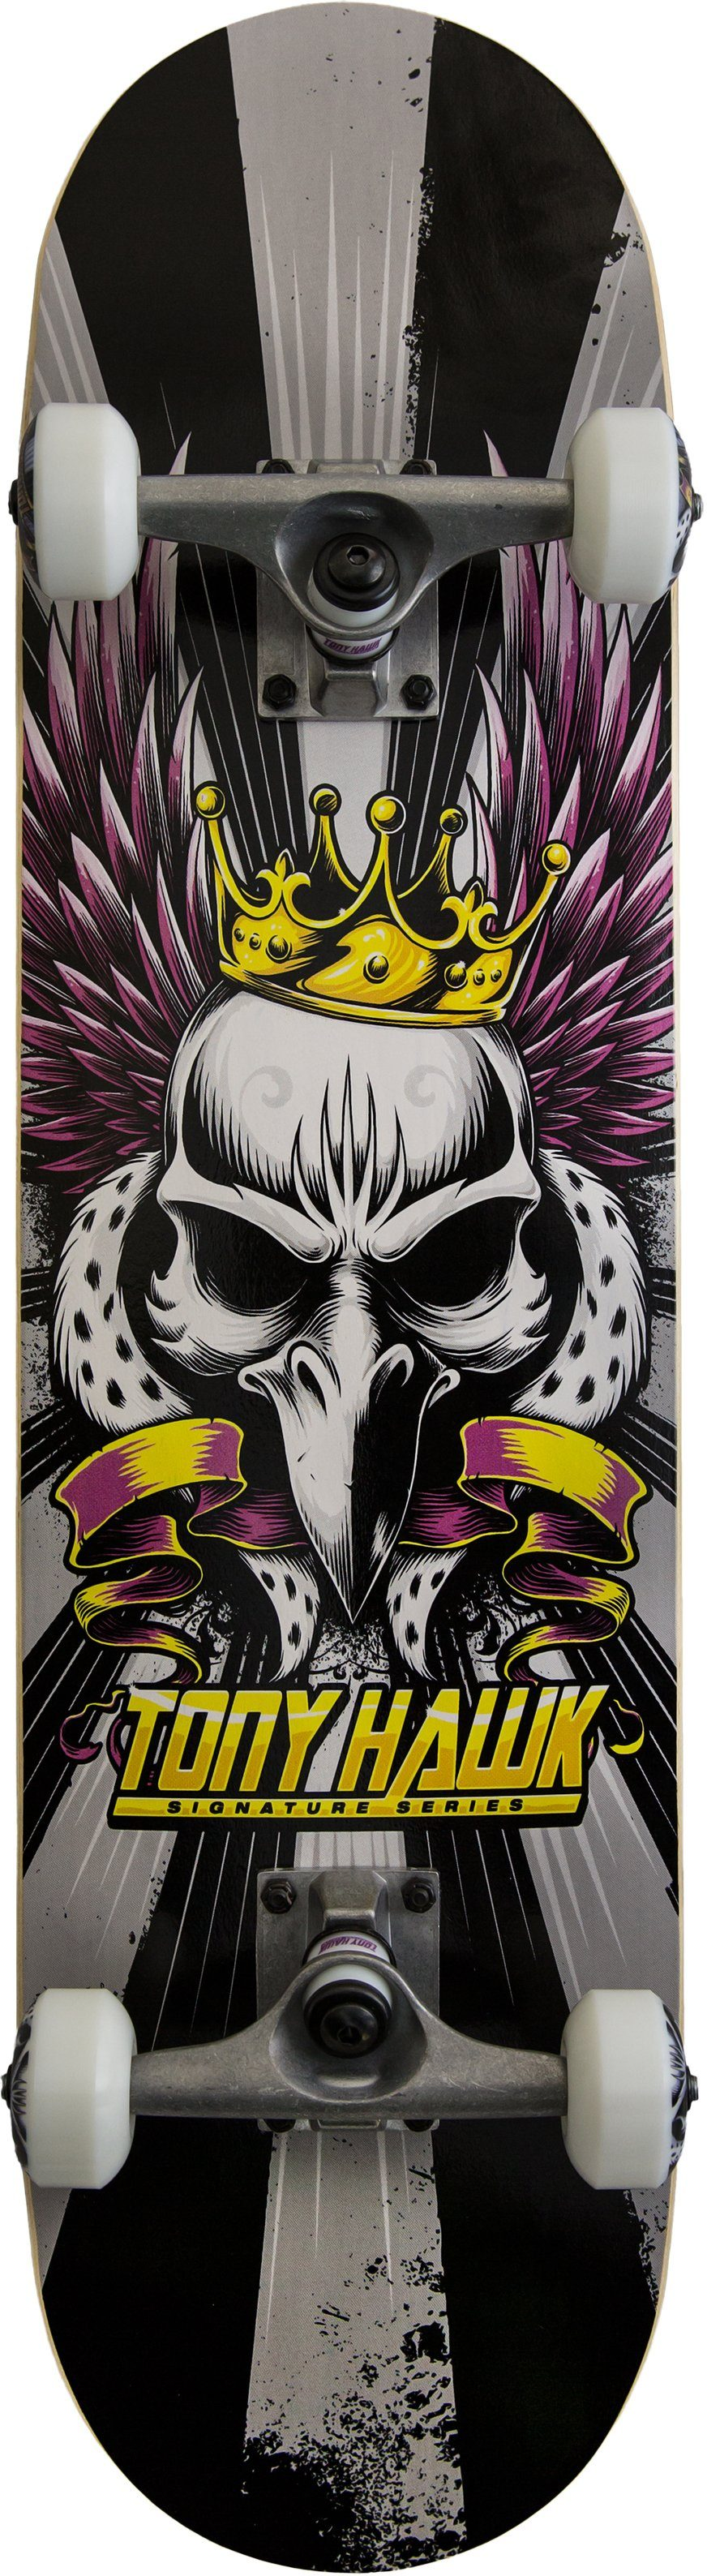 Tony Hawk Skateboard, »Royal Hawk«